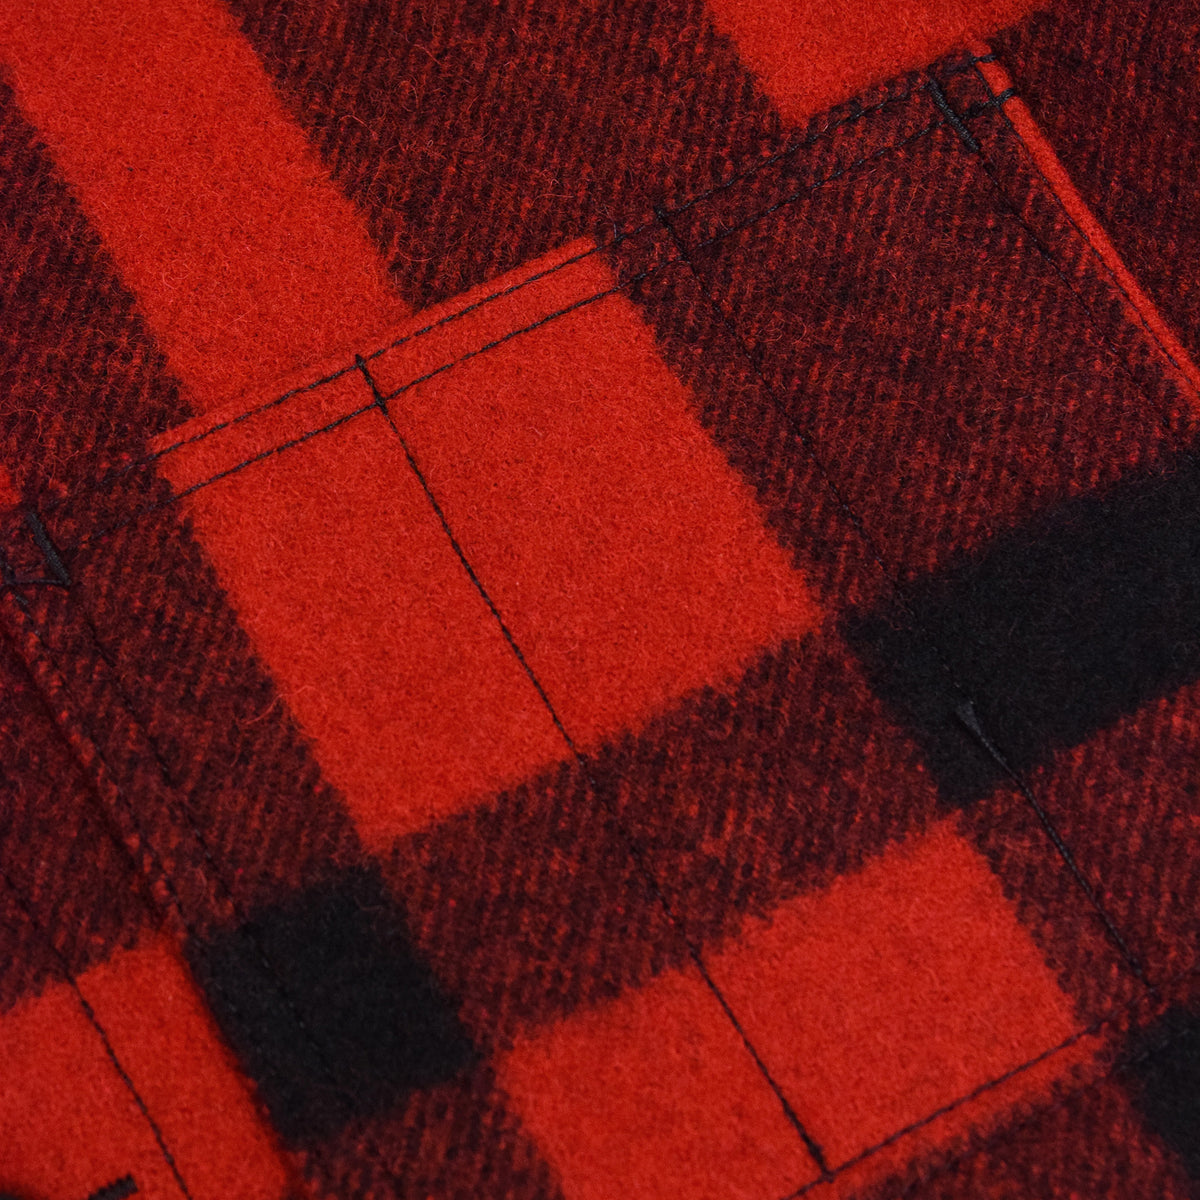 Filson Mackinaw Wool Vest Red Black Pocket Detail